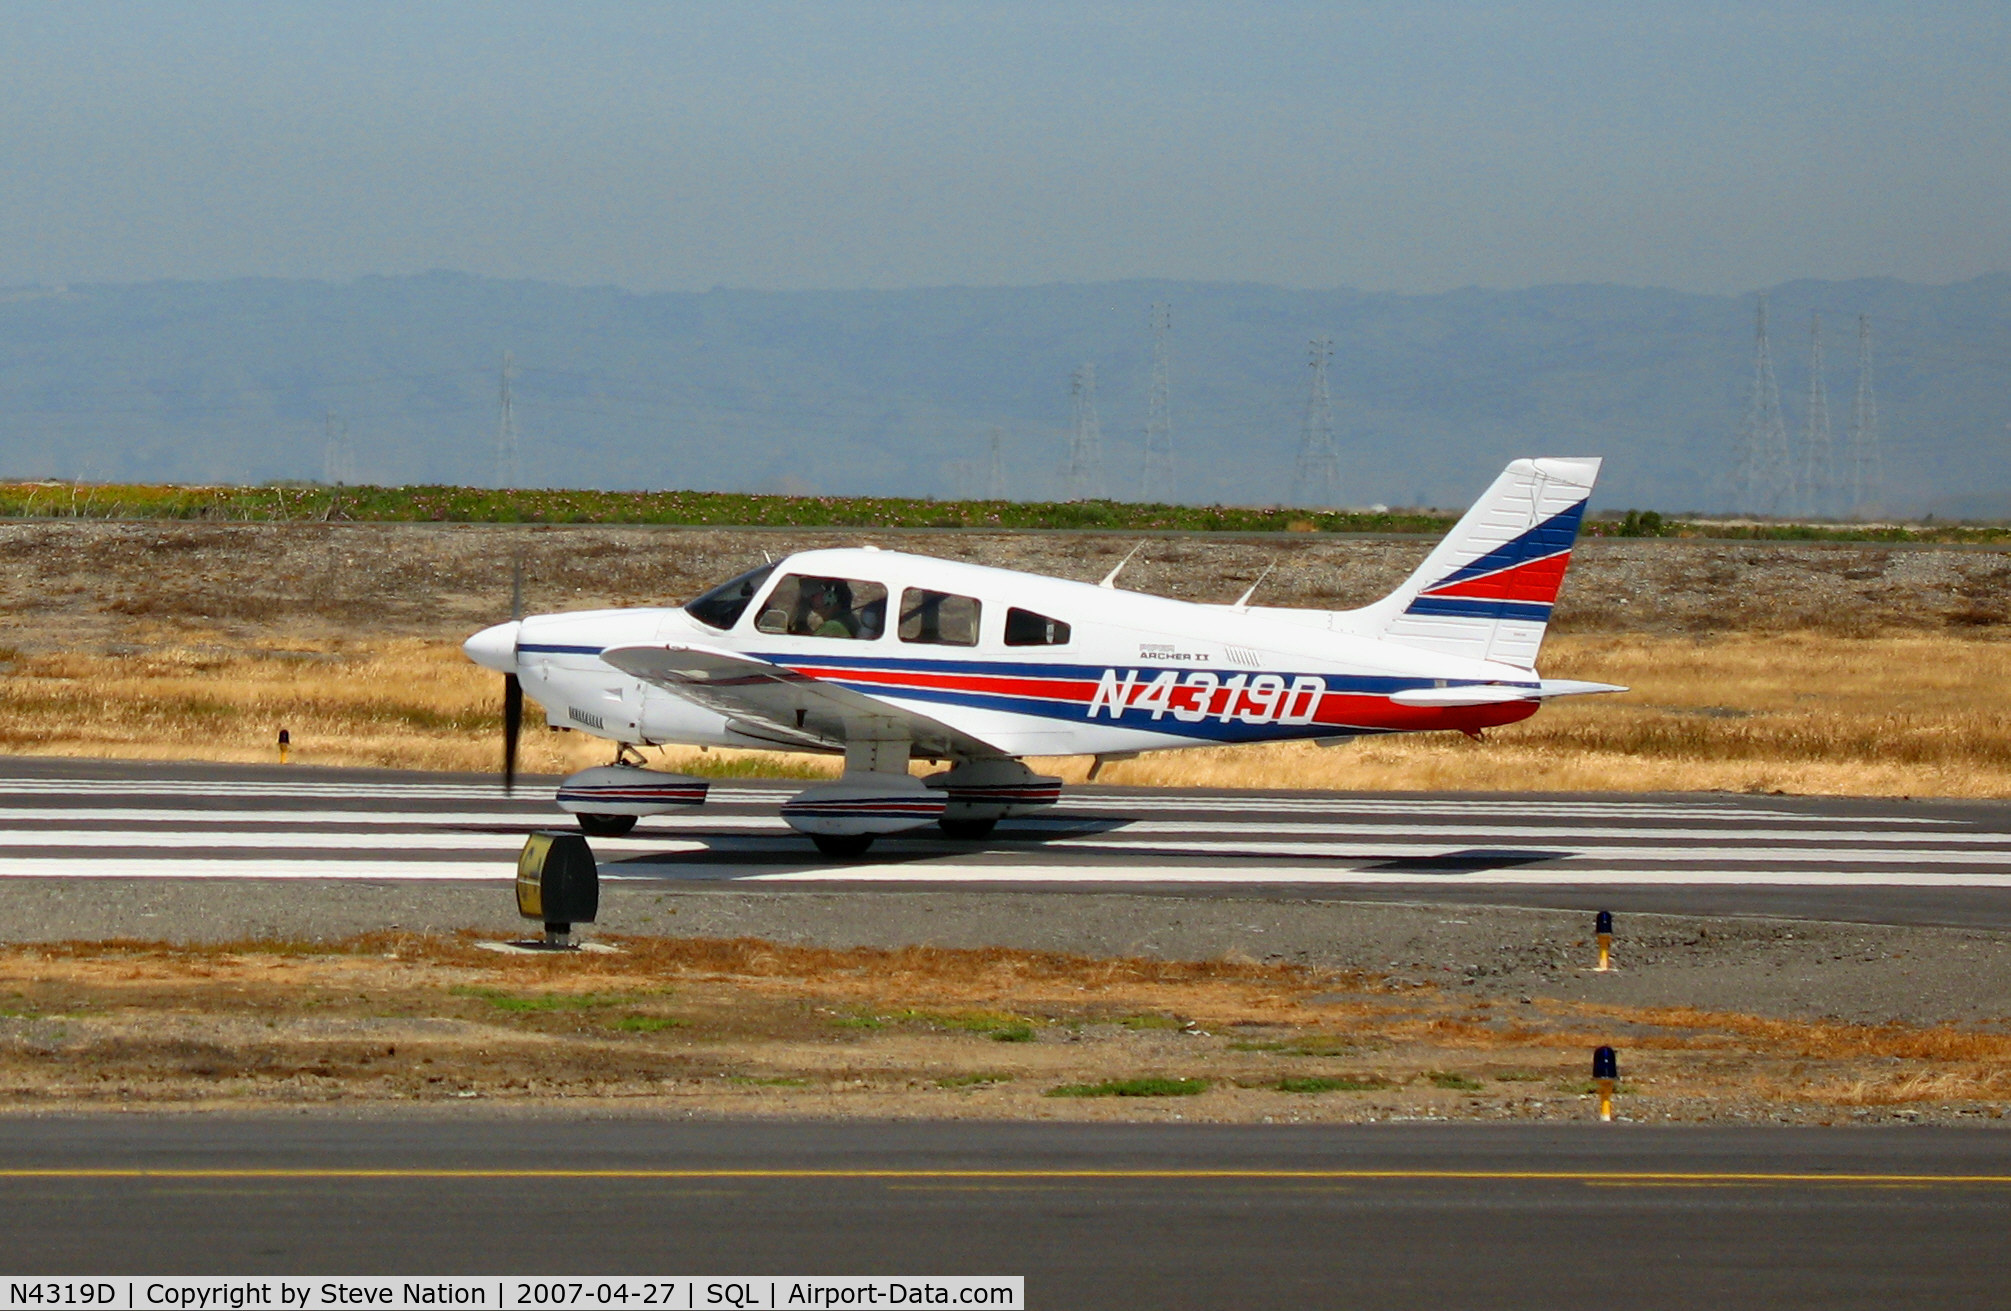 N4319D, 1983 Piper PA-28-181 Archer C/N 28-8490007, Arch Aviation 1983 Piper PA-28-181 beginning take-off run @ San Carlos, CA